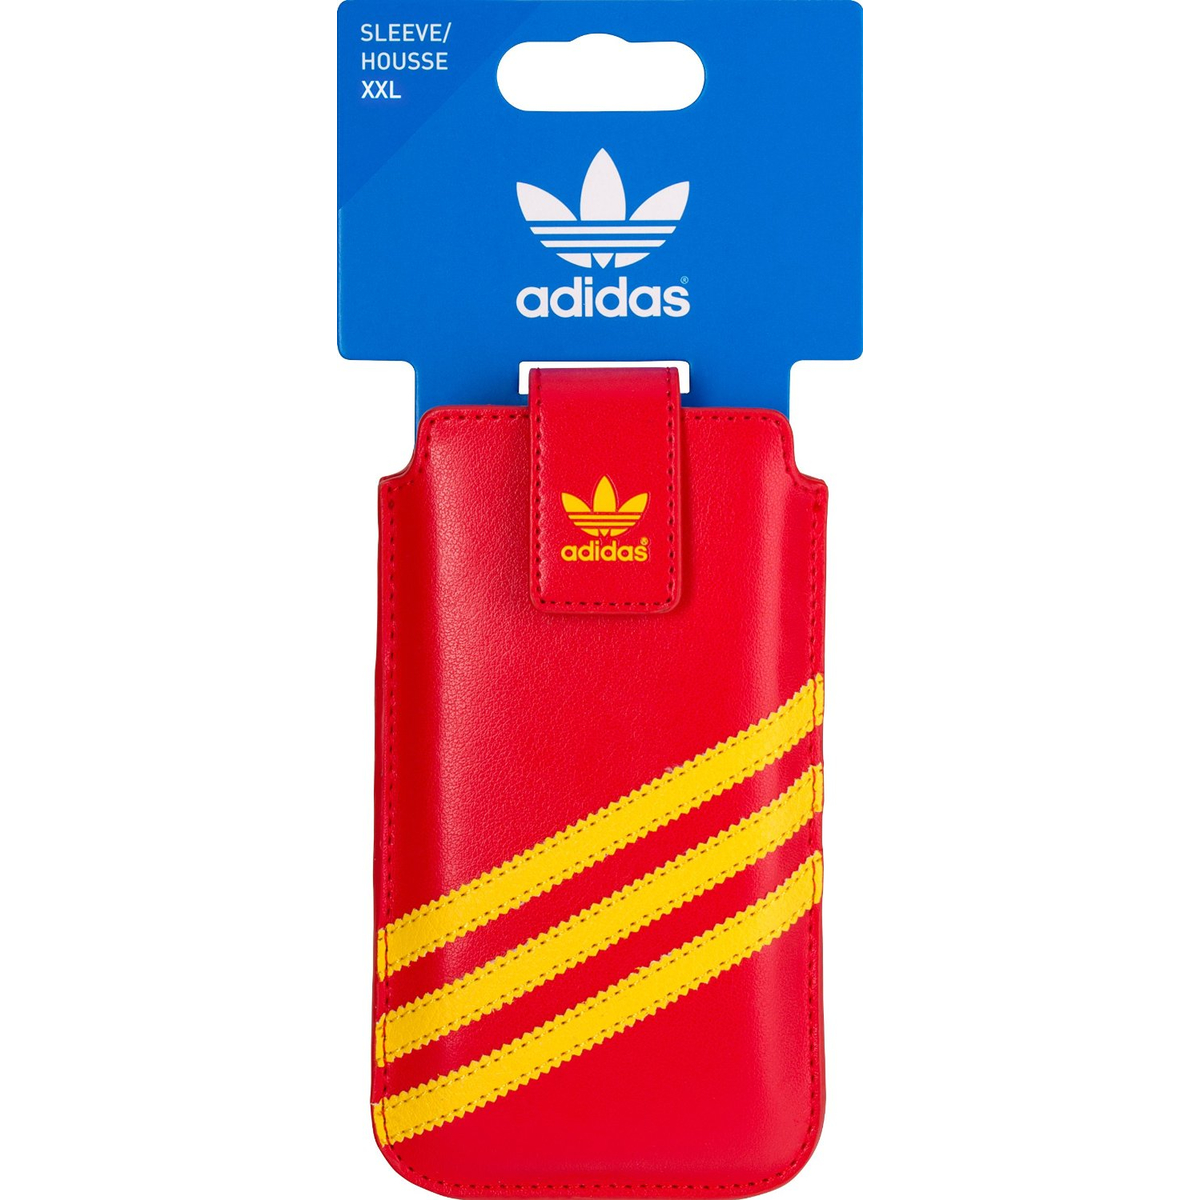 adidas Originals Tasche Sleeve XXL iPhone 6 Galaxy S4...